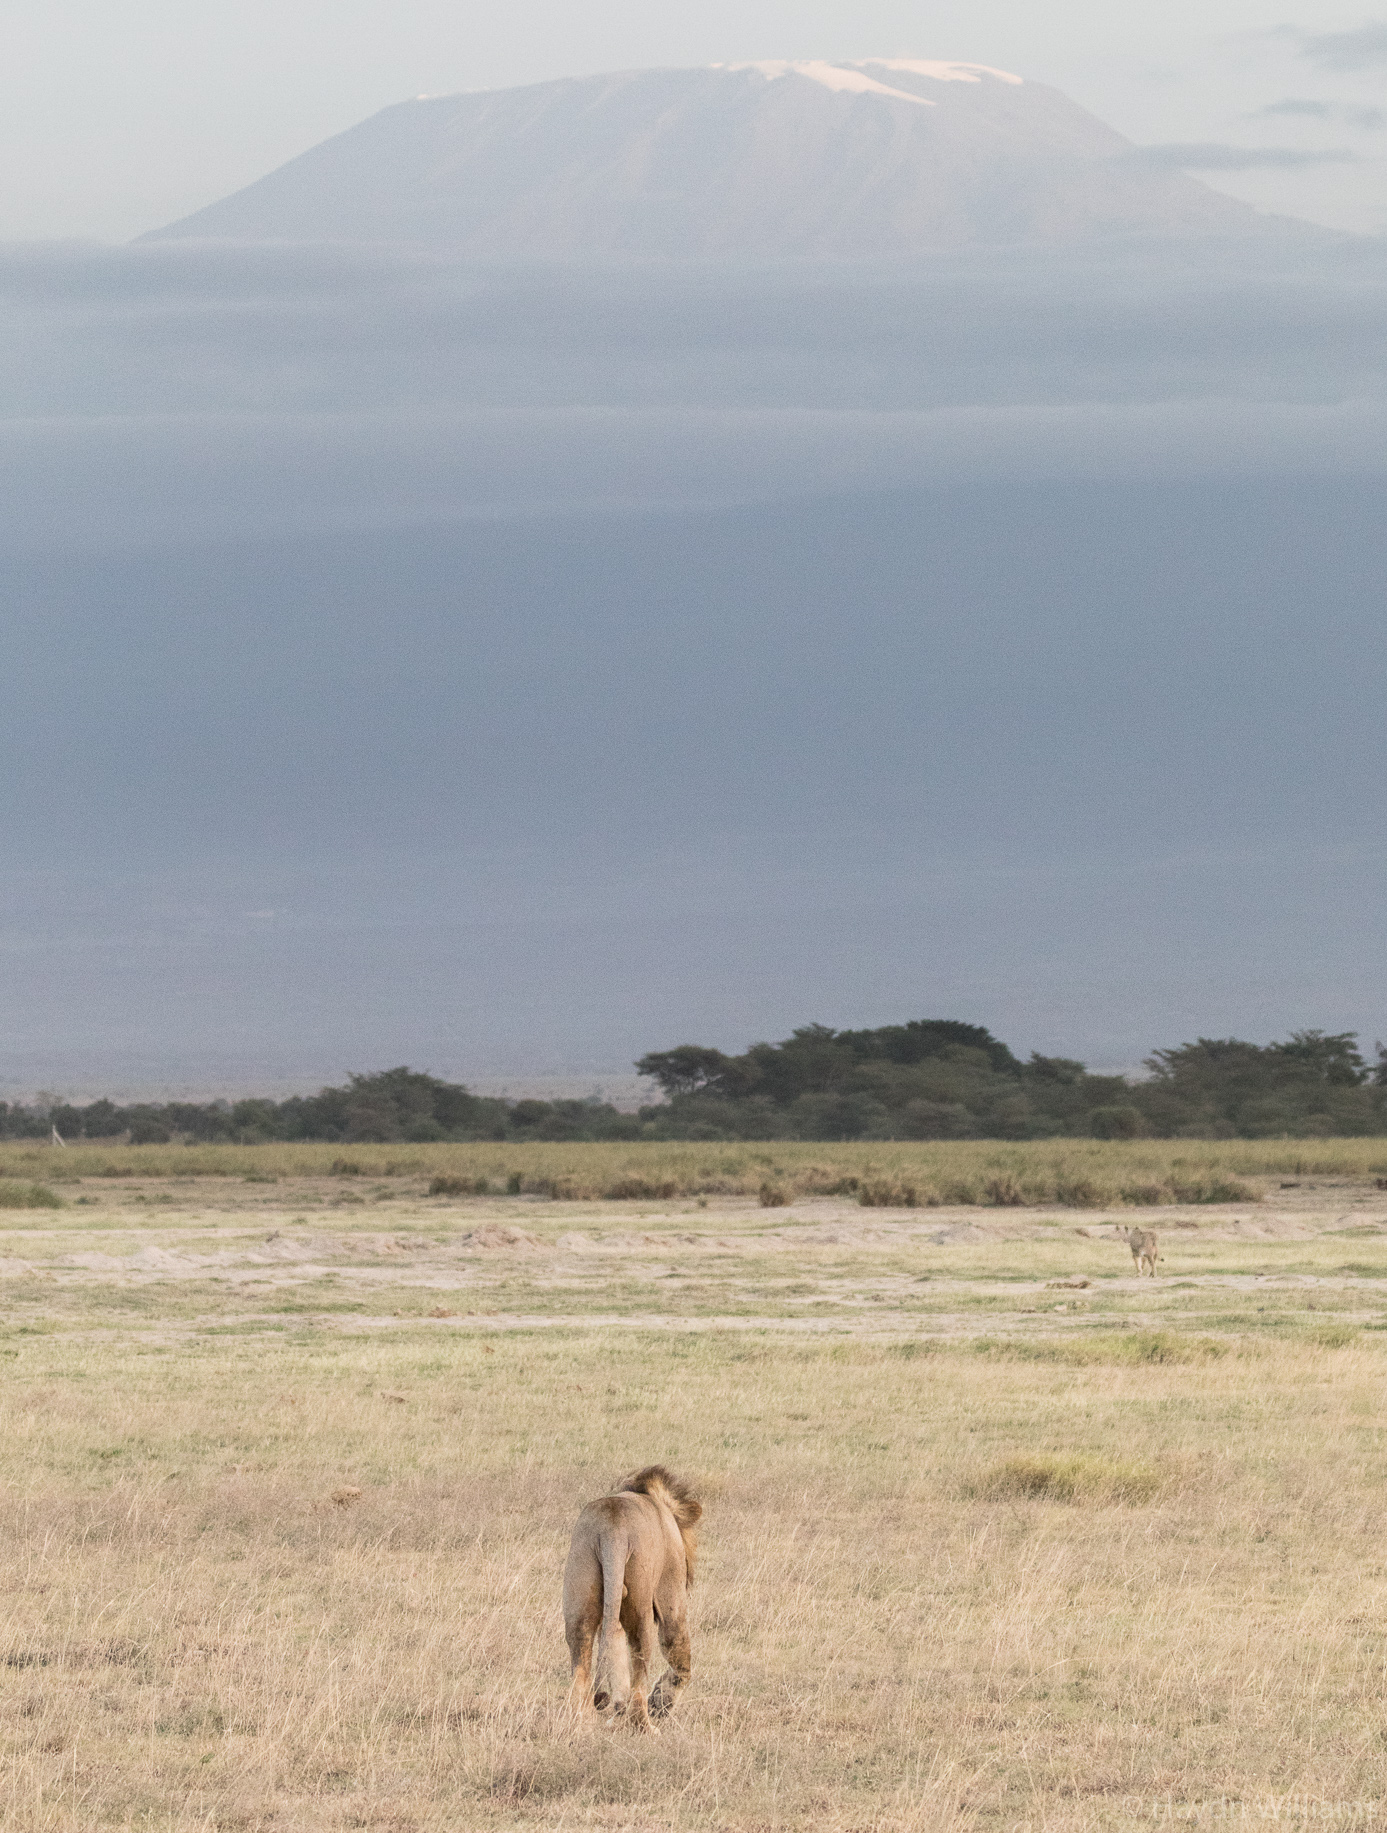 Adult male lion in front of Kili. © Haydn Williams 2019